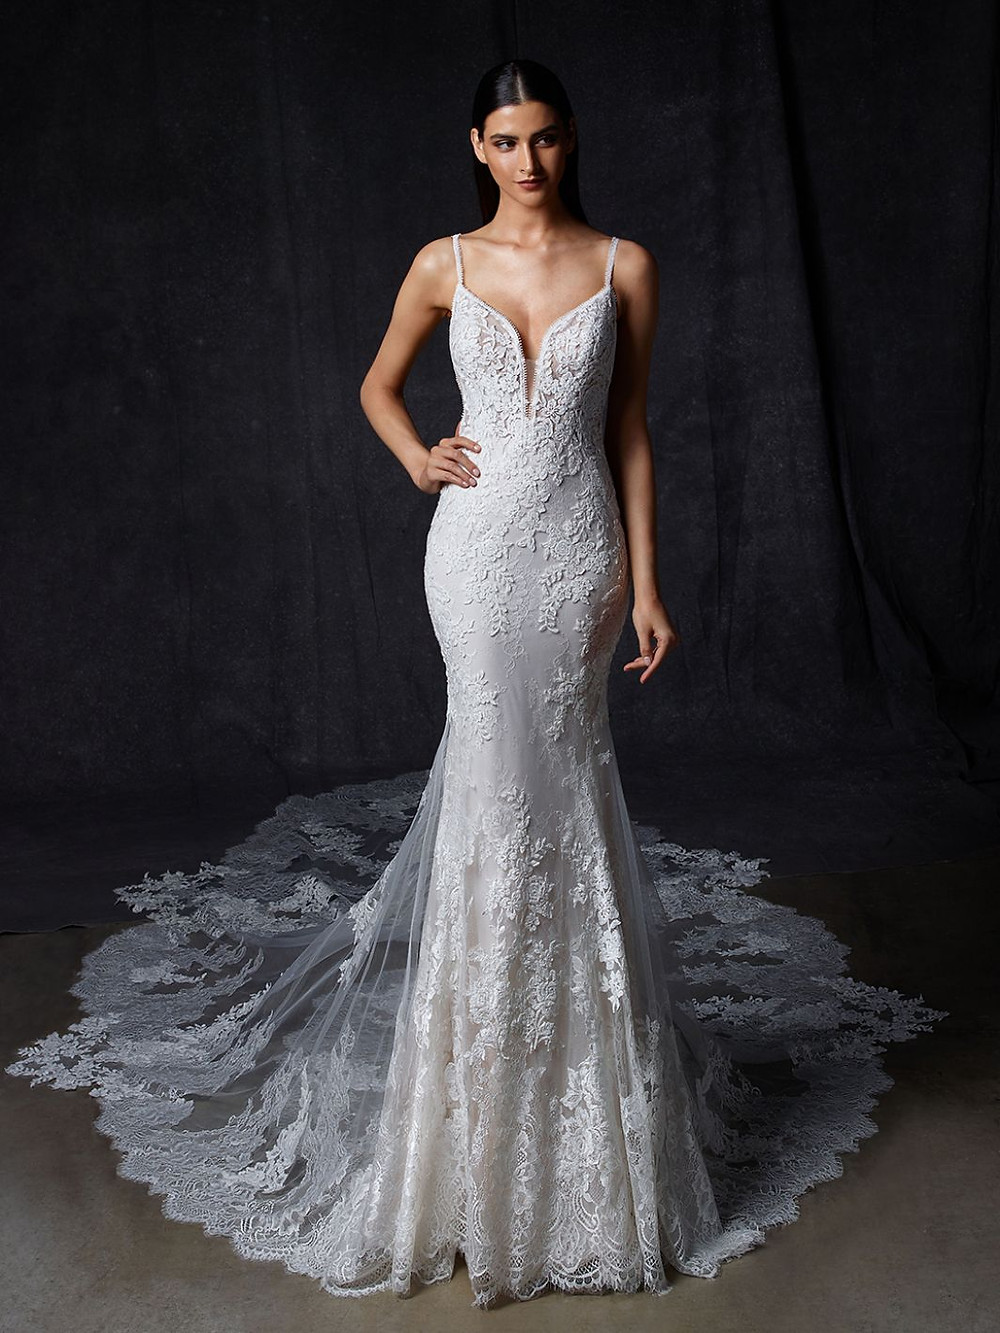 An Enzoani lace mermaid wedding dress, with thin straps and a long train